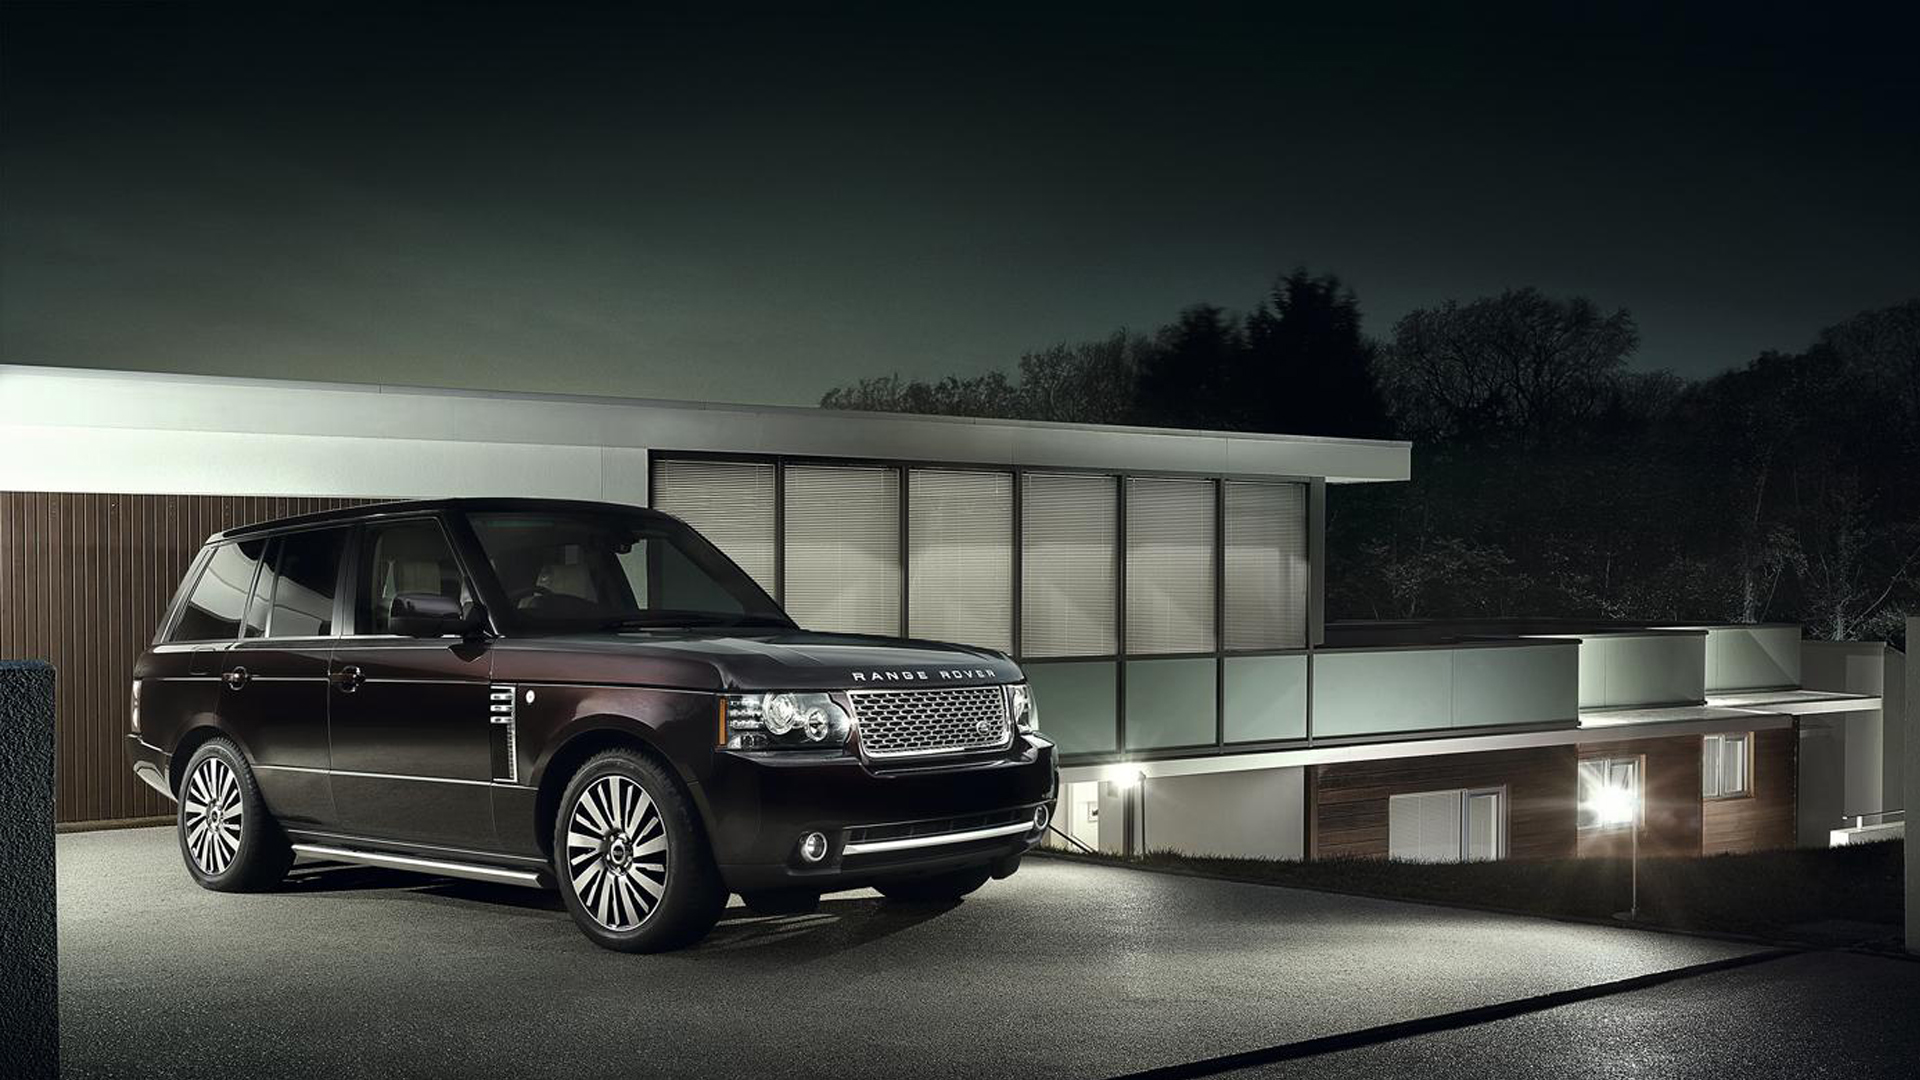 1920x1080 - Range Rover Wallpapers 26